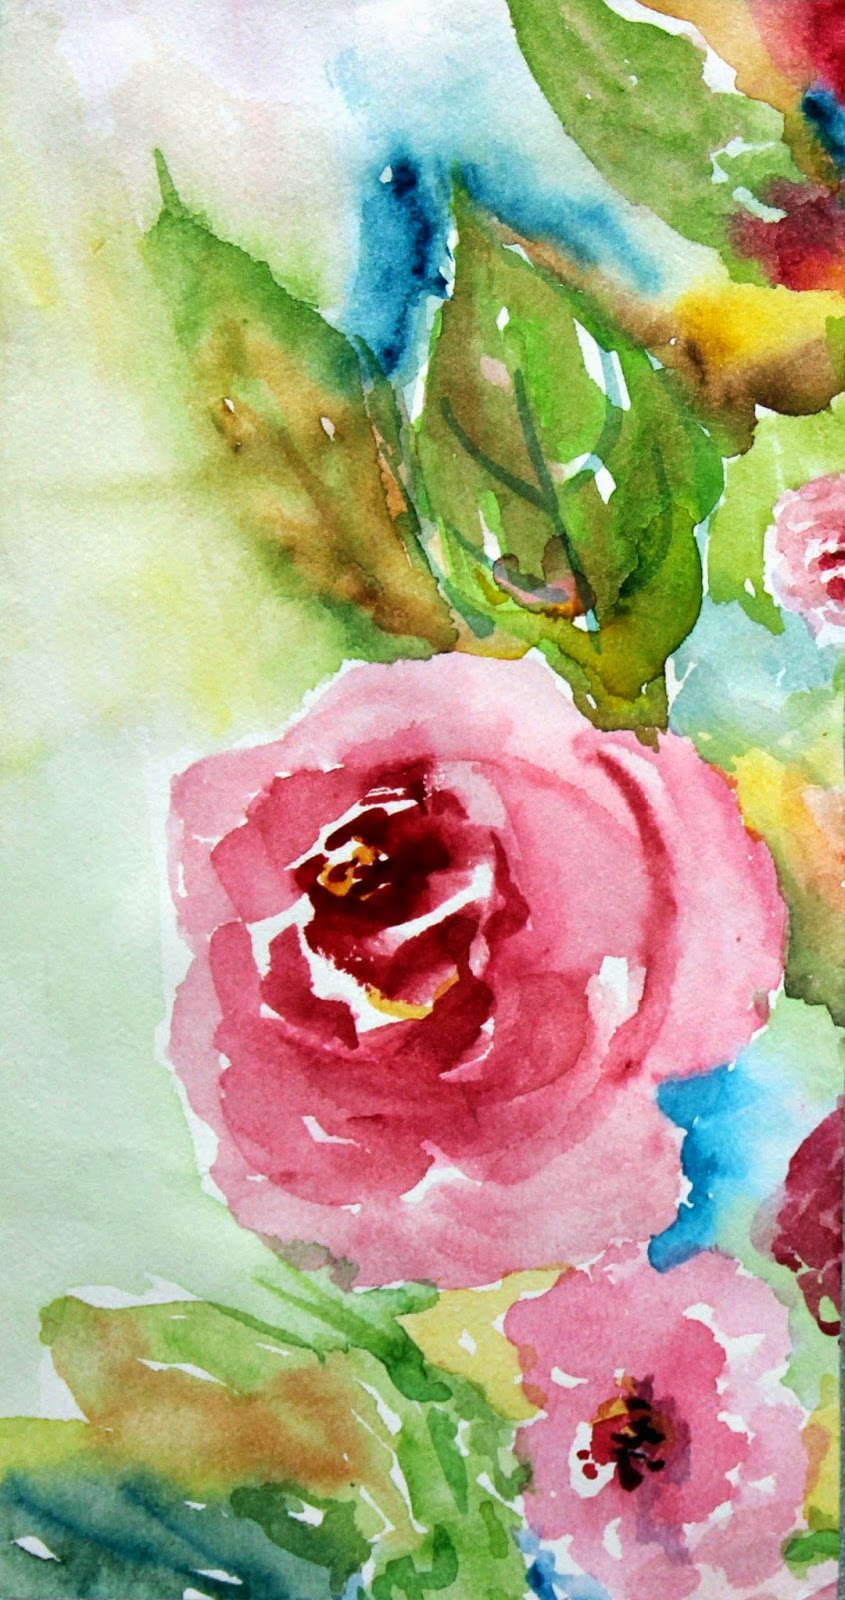 roses, painted, watercolor, handmade, art, painting, flowers